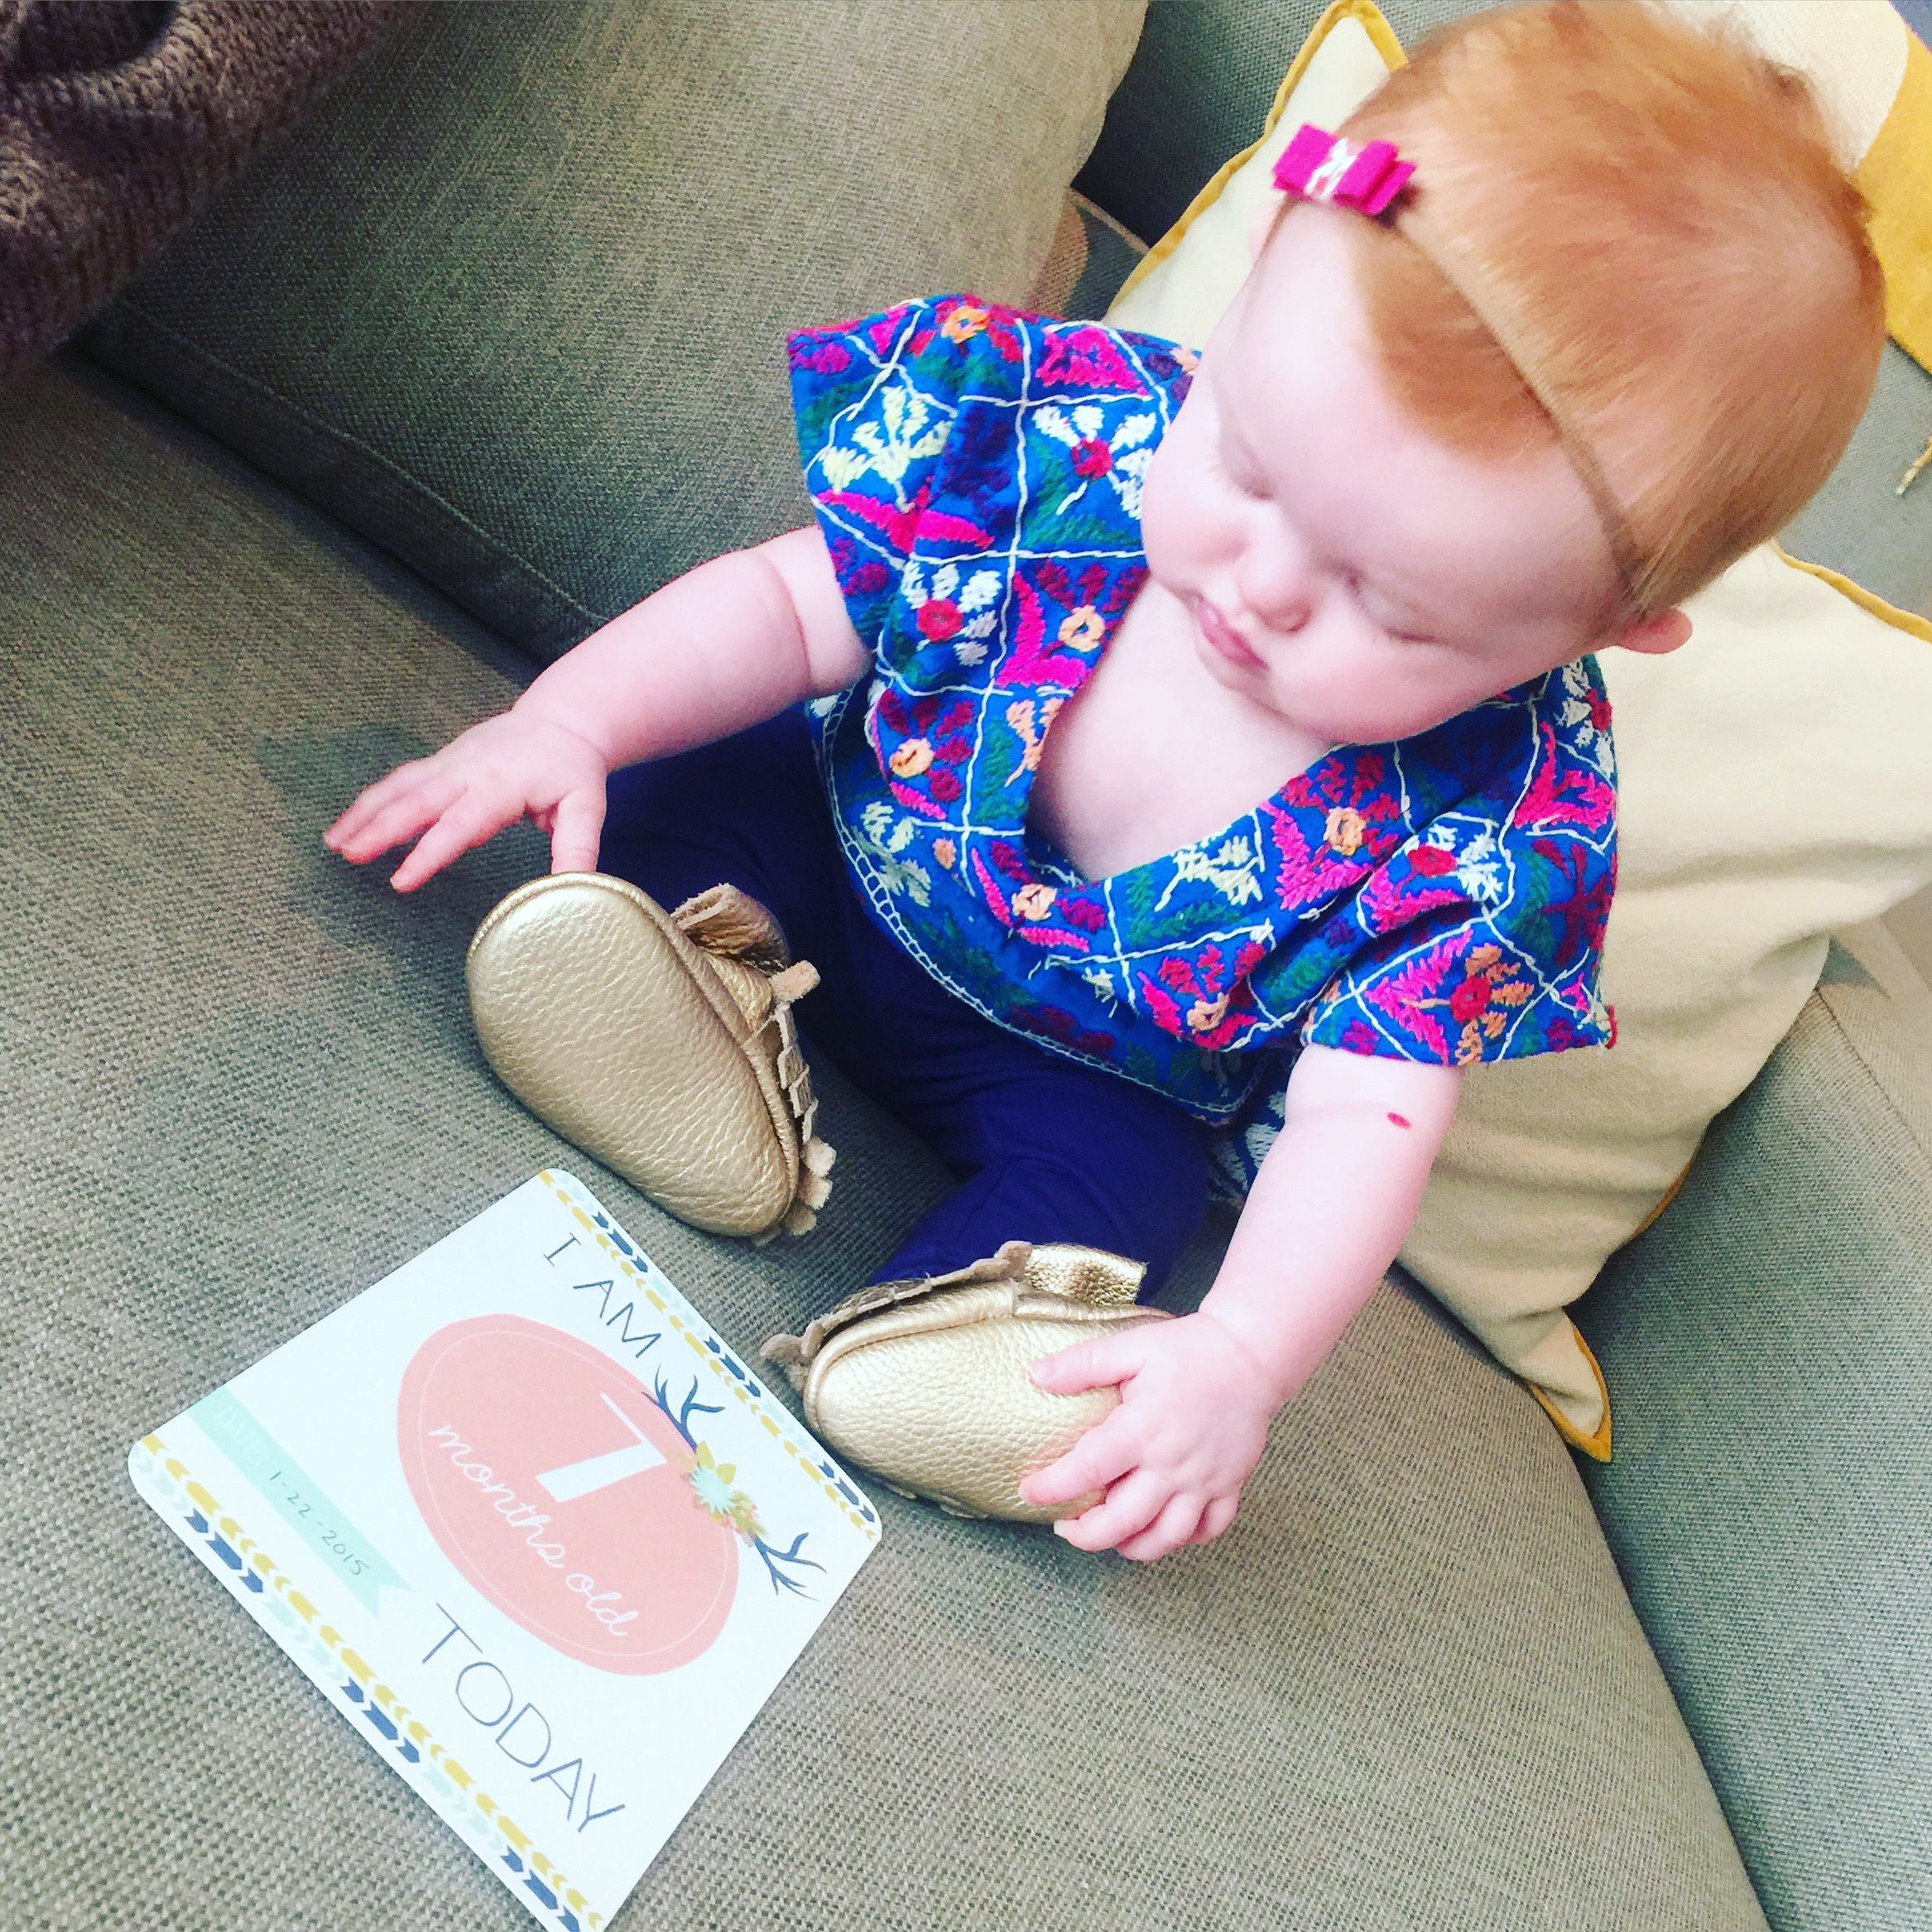 Studying her shoes, her newest fascination